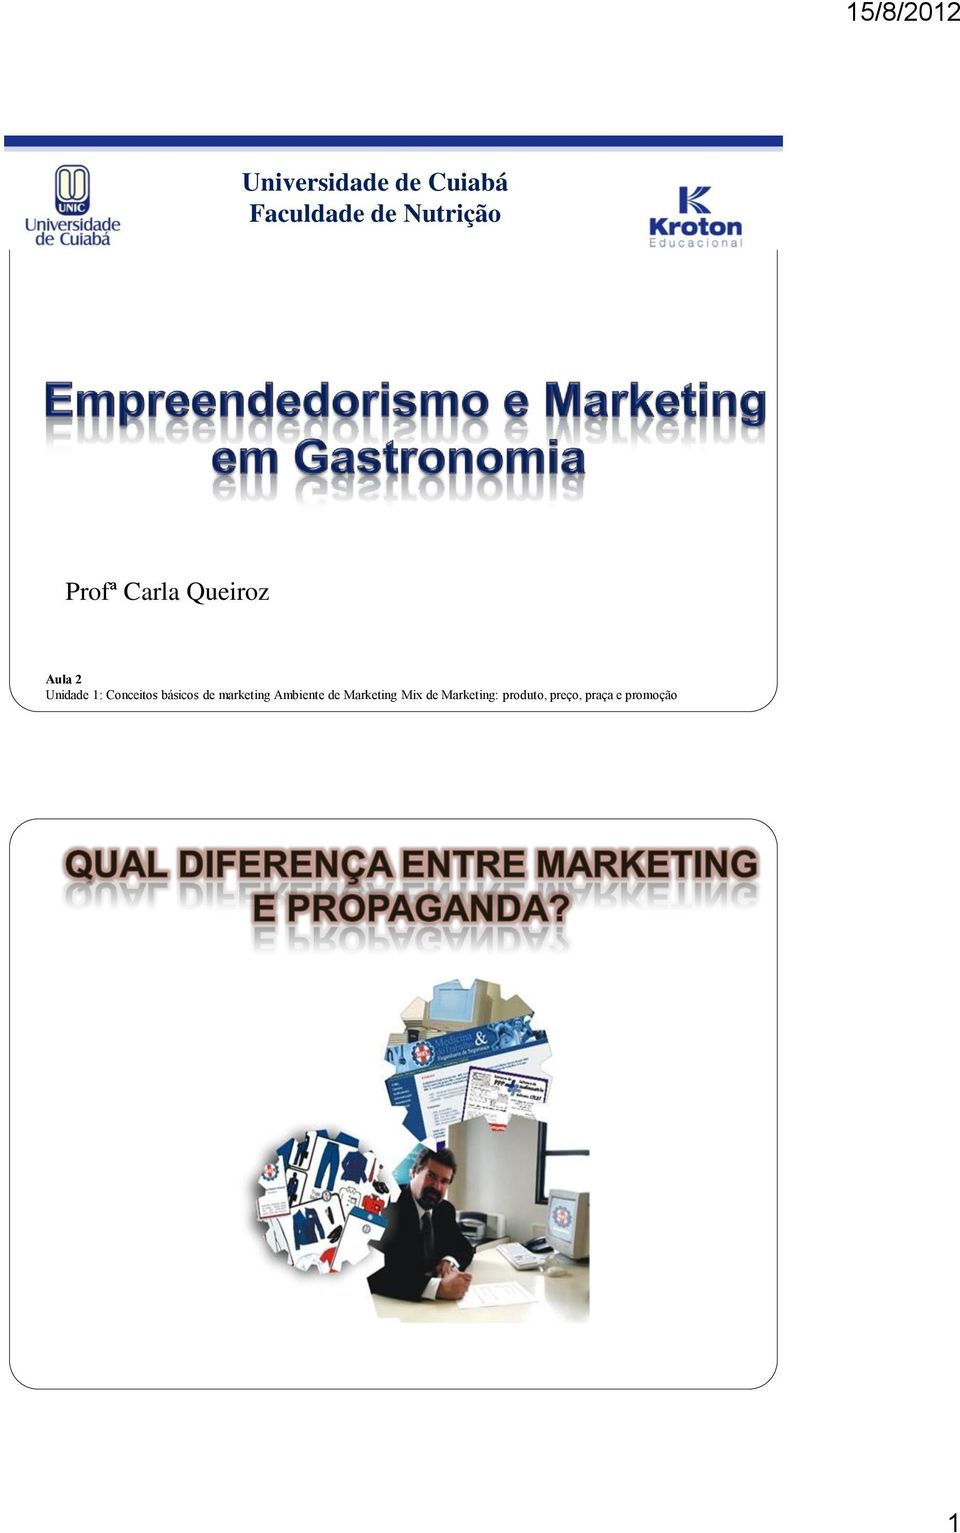 Conceitos básicos de marketing Ambiente de